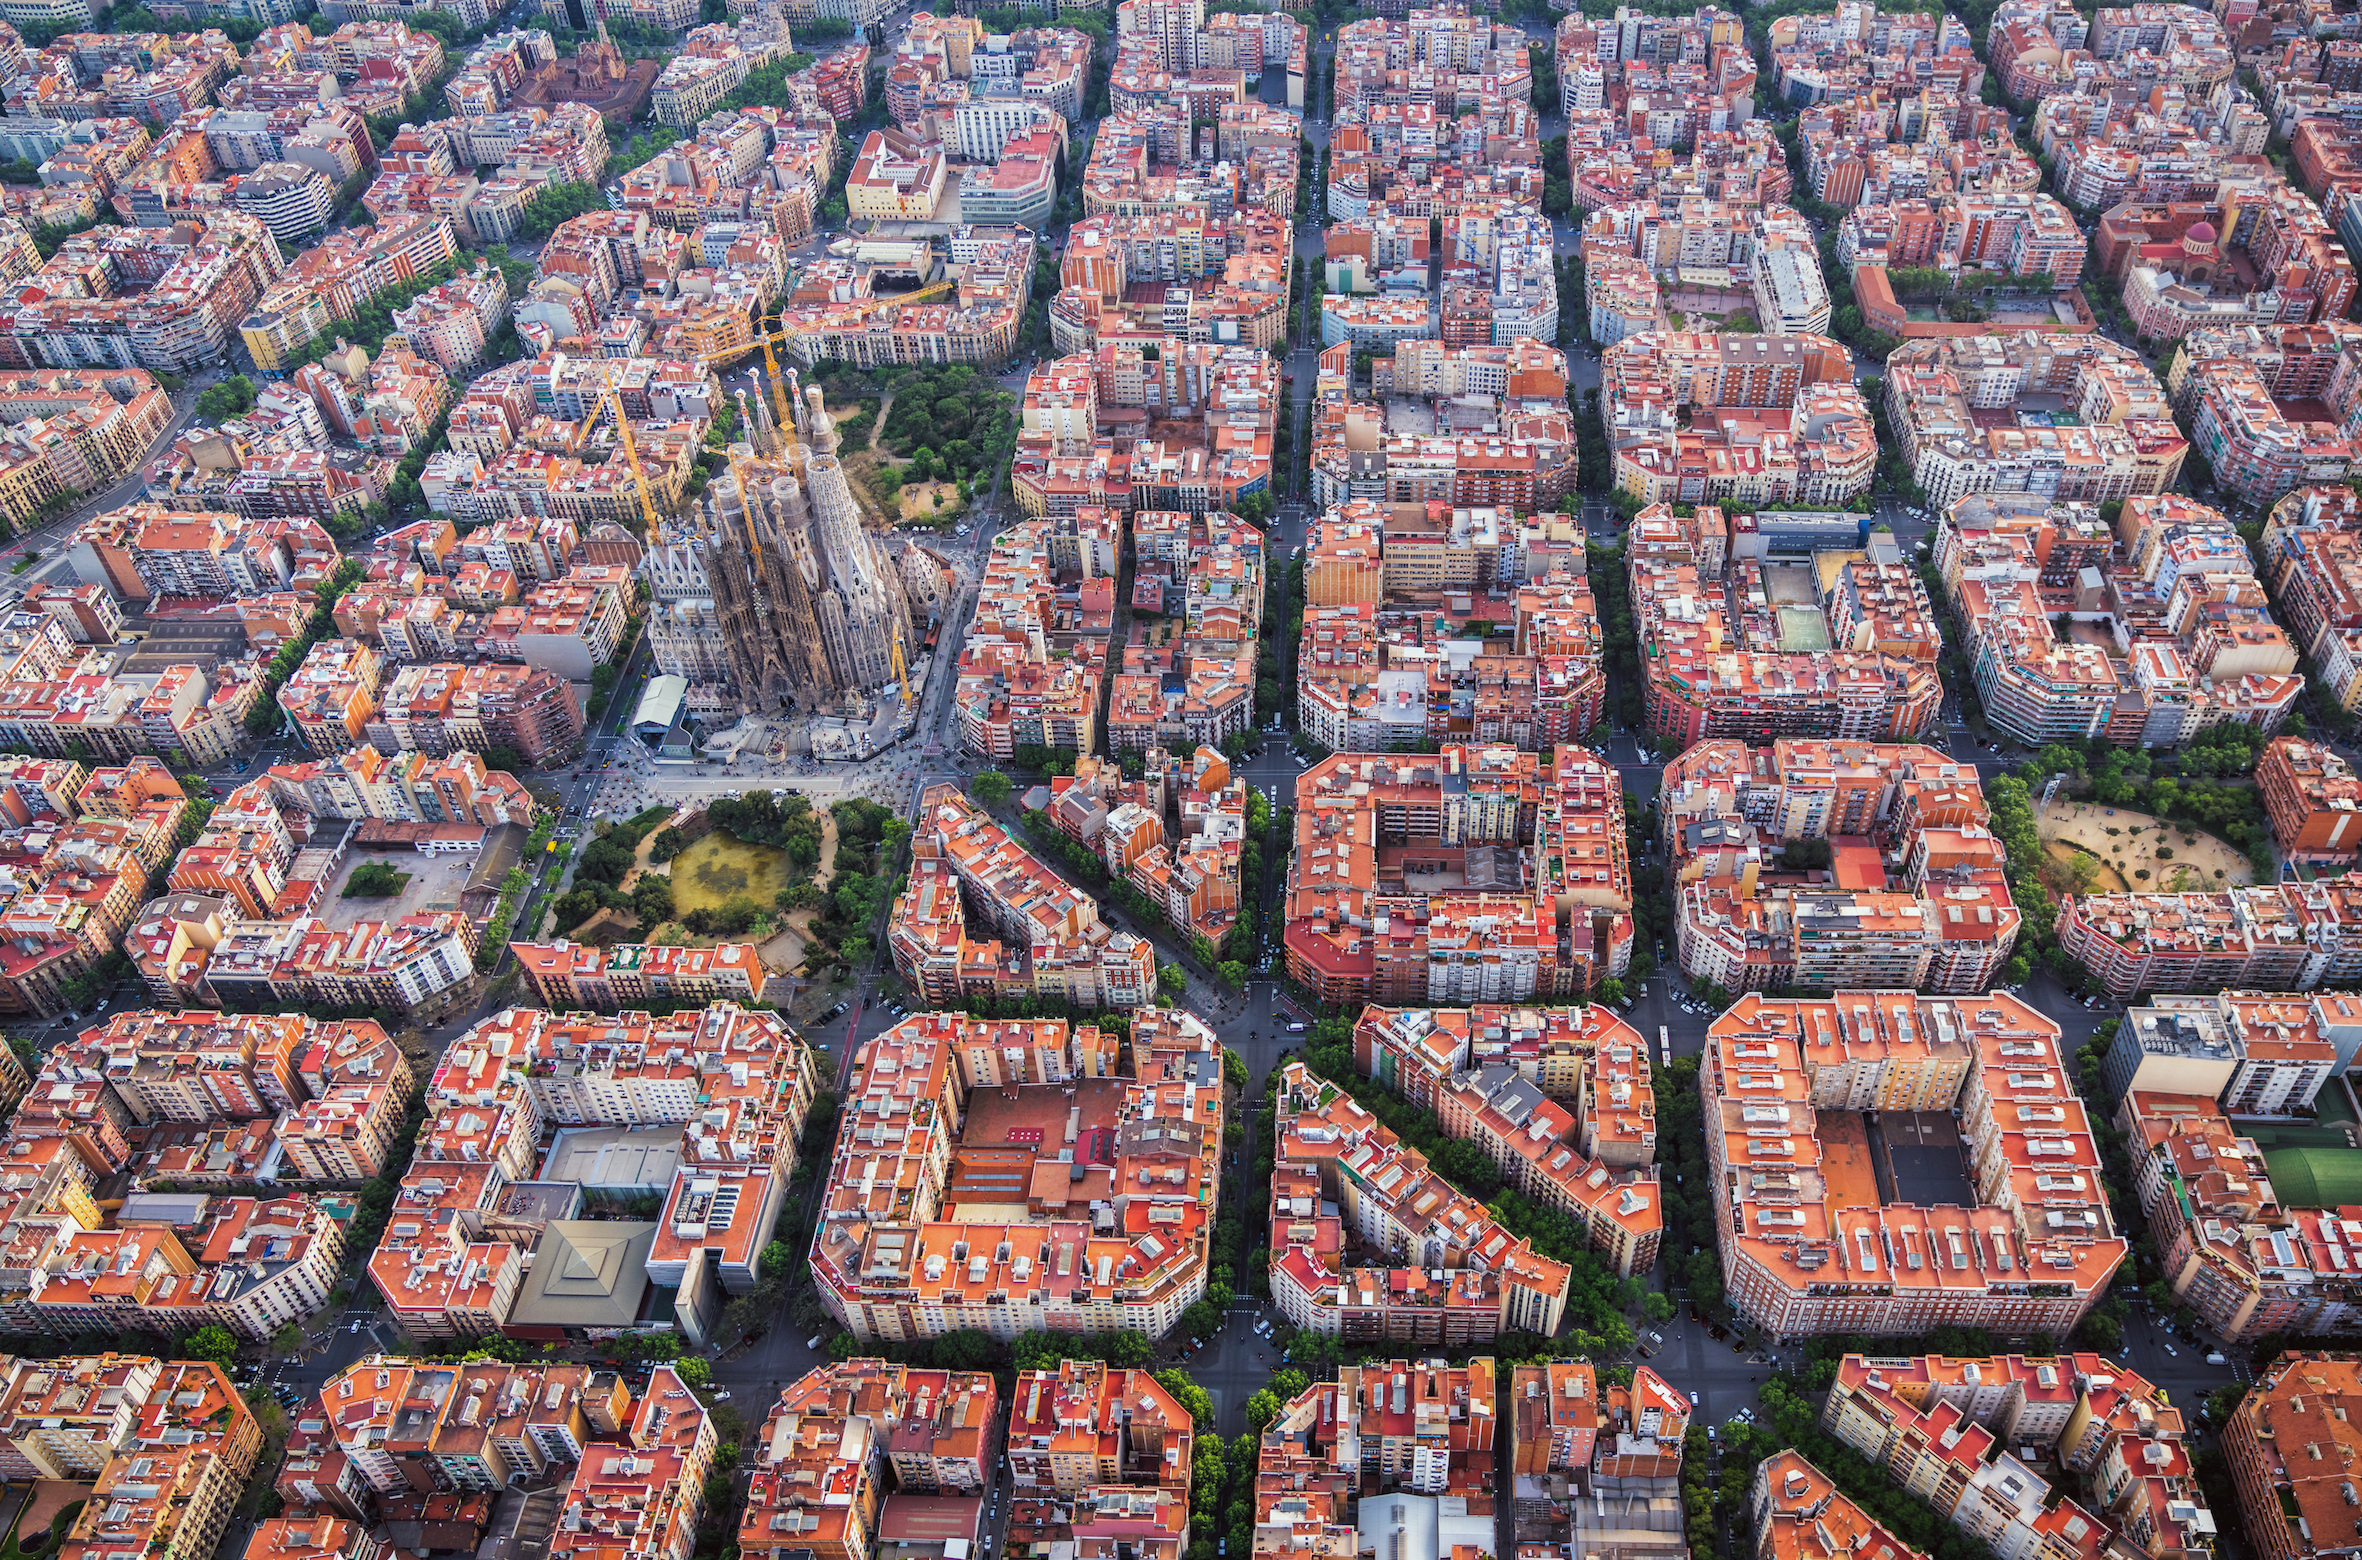 The Eixample